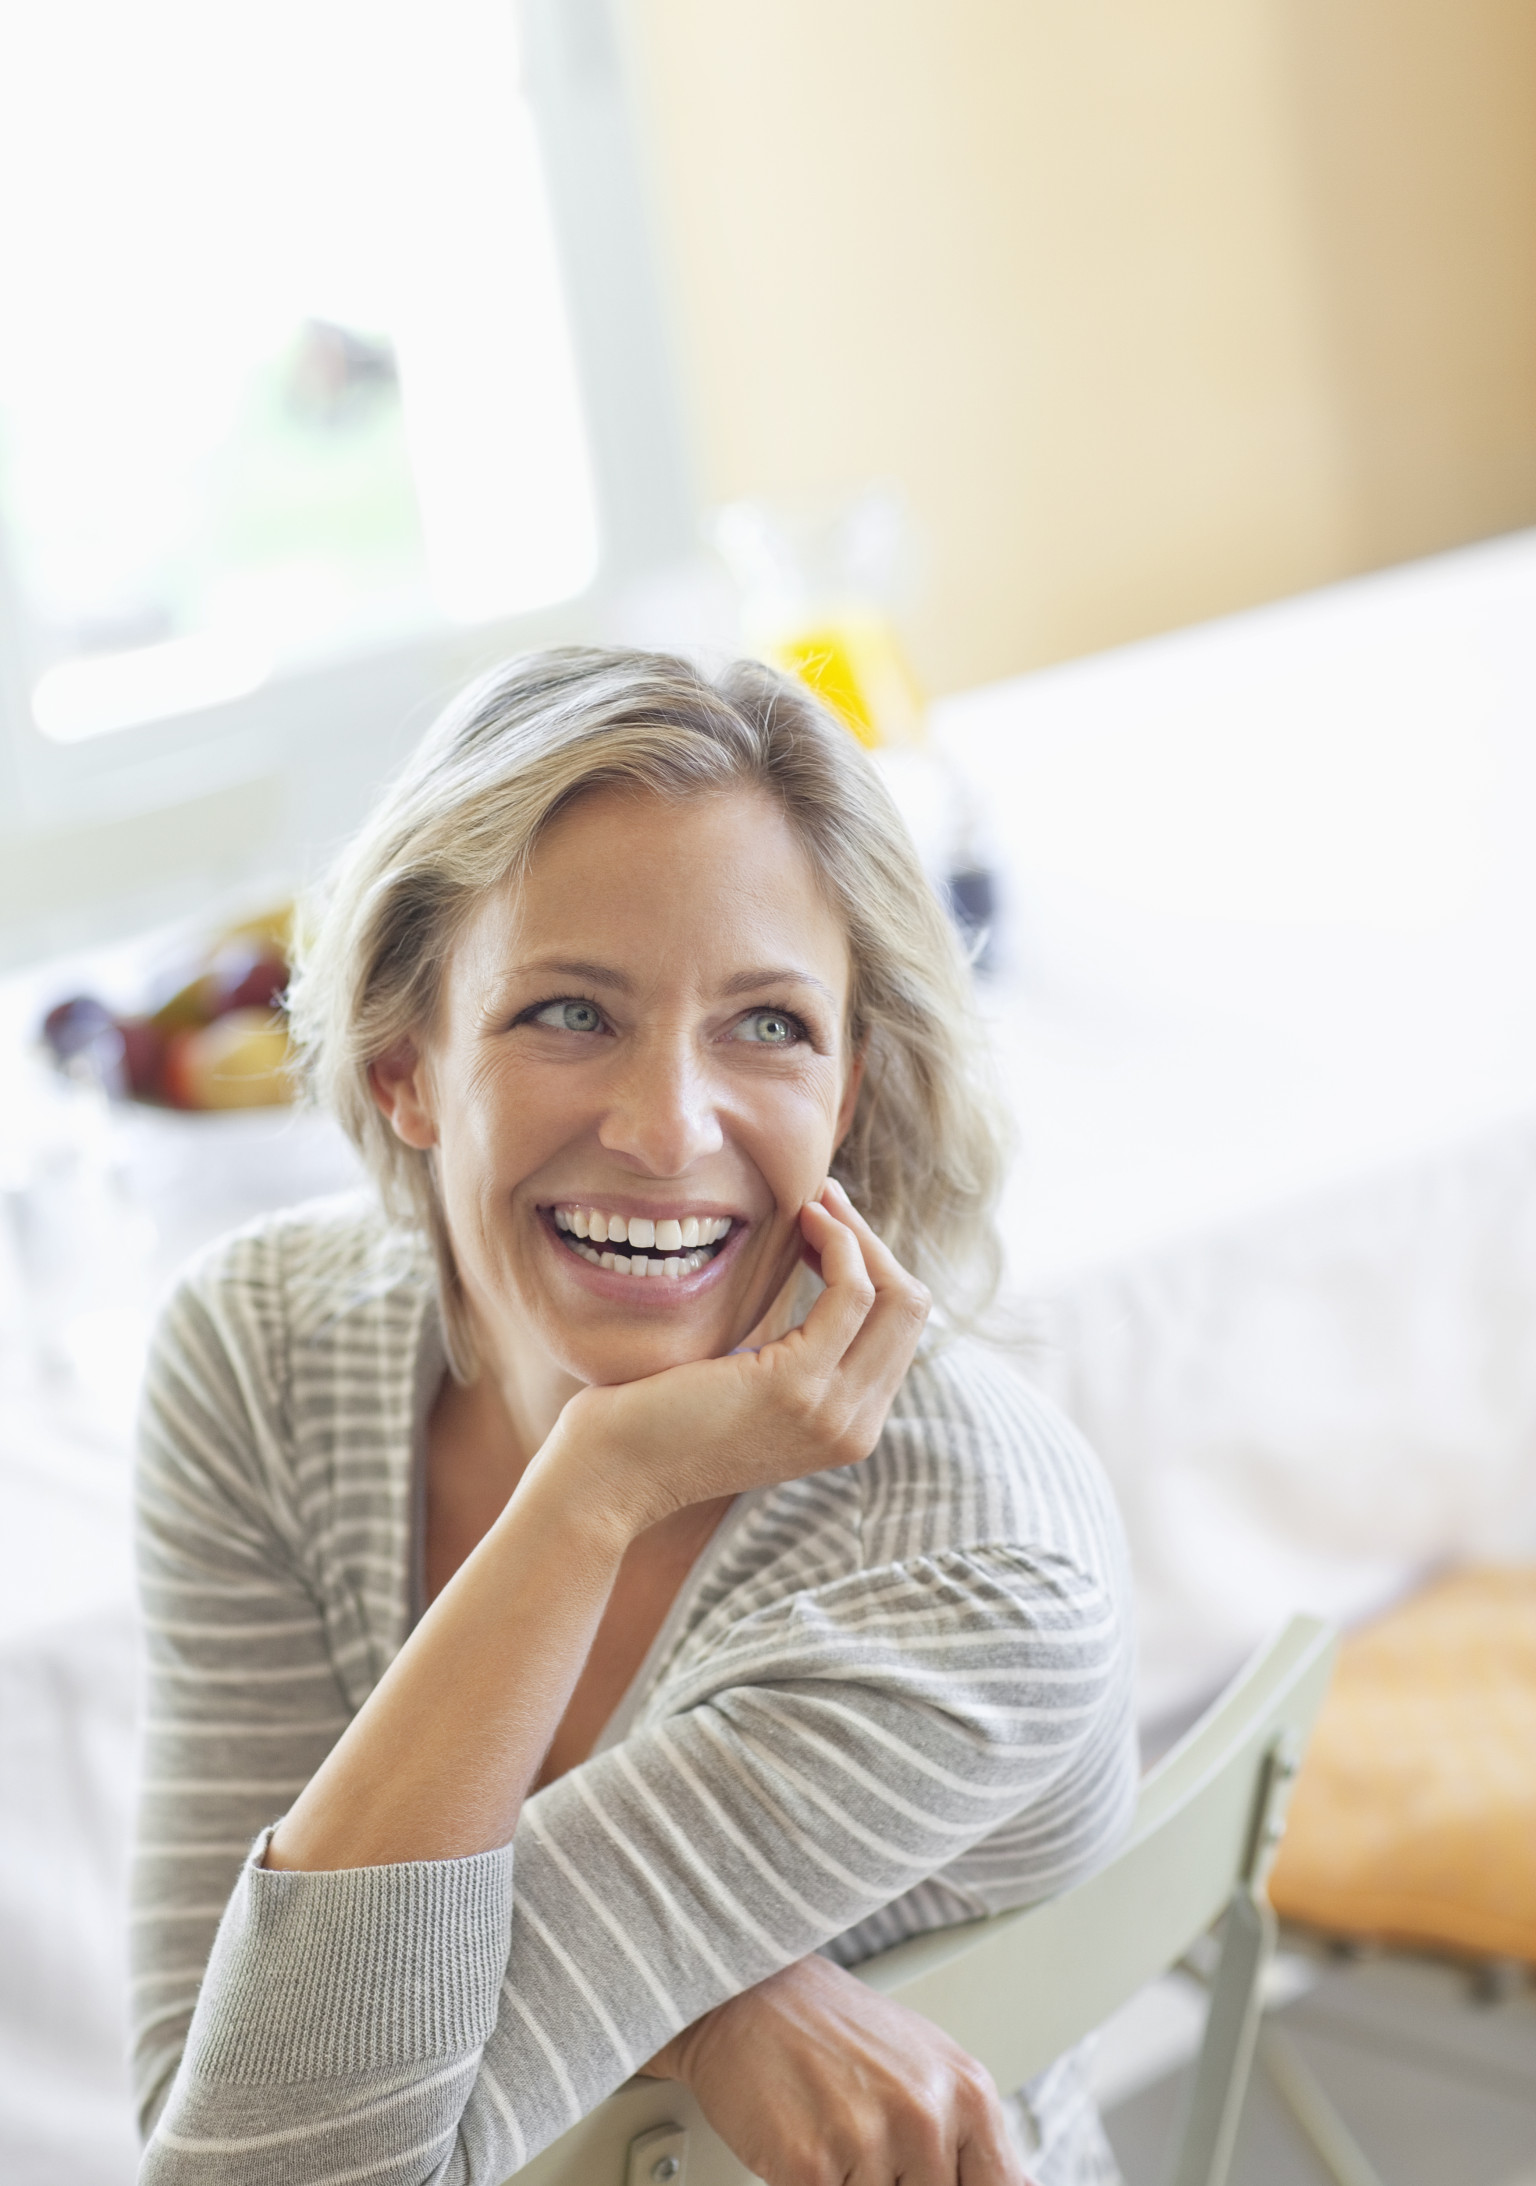 Are You Really Happy? These Are 5 Traits of a Happy Person